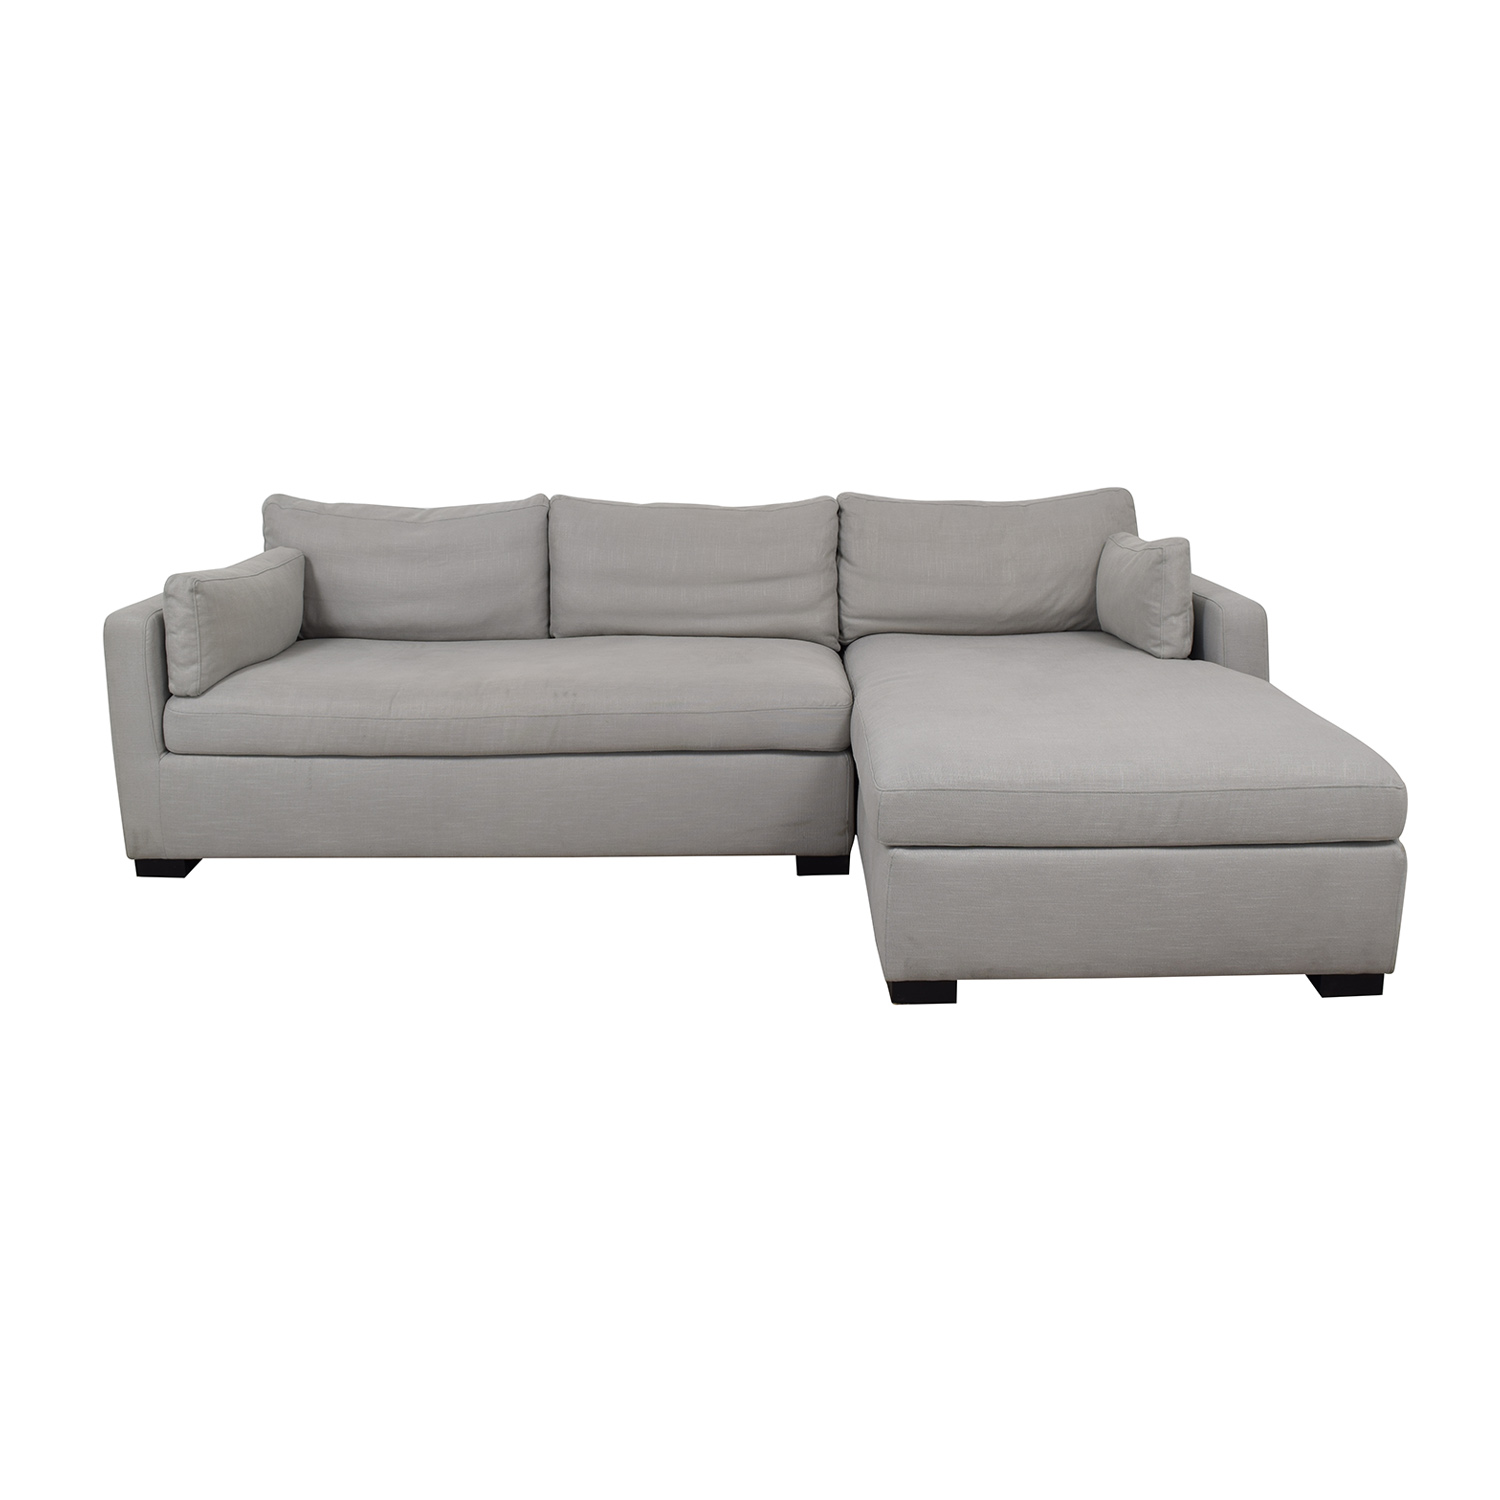 buy Interior Define Charley Beige Heavy Cloth Right Chaise Sectional online